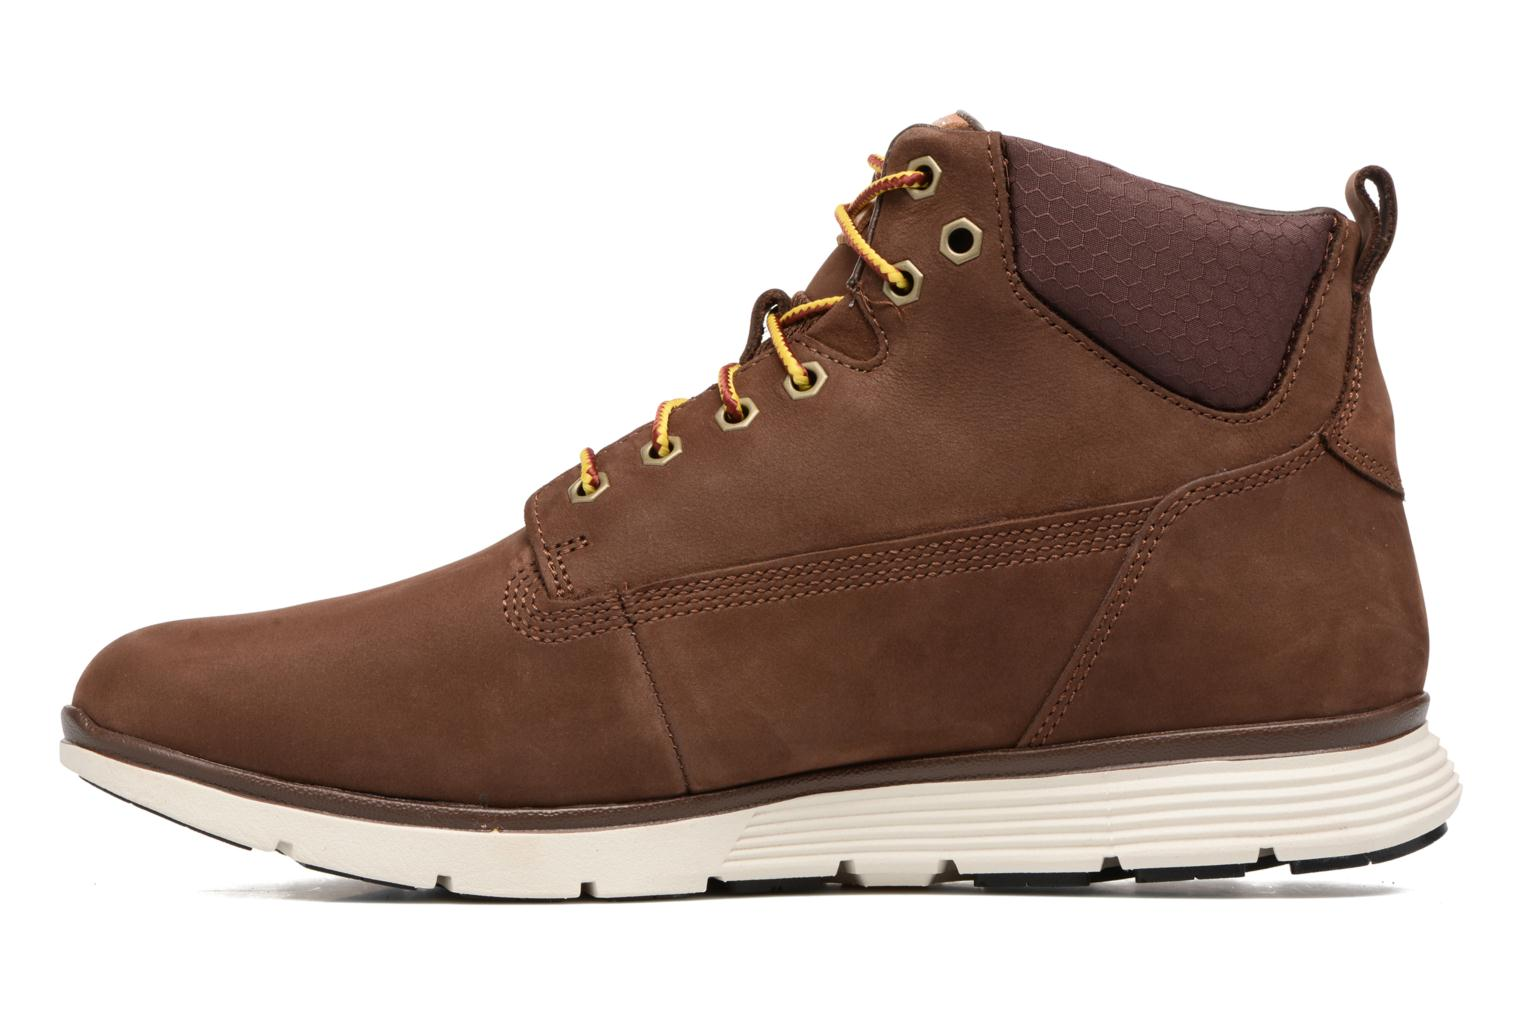 Bottines et boots Timberland Killington Chukka 2 Marron vue face